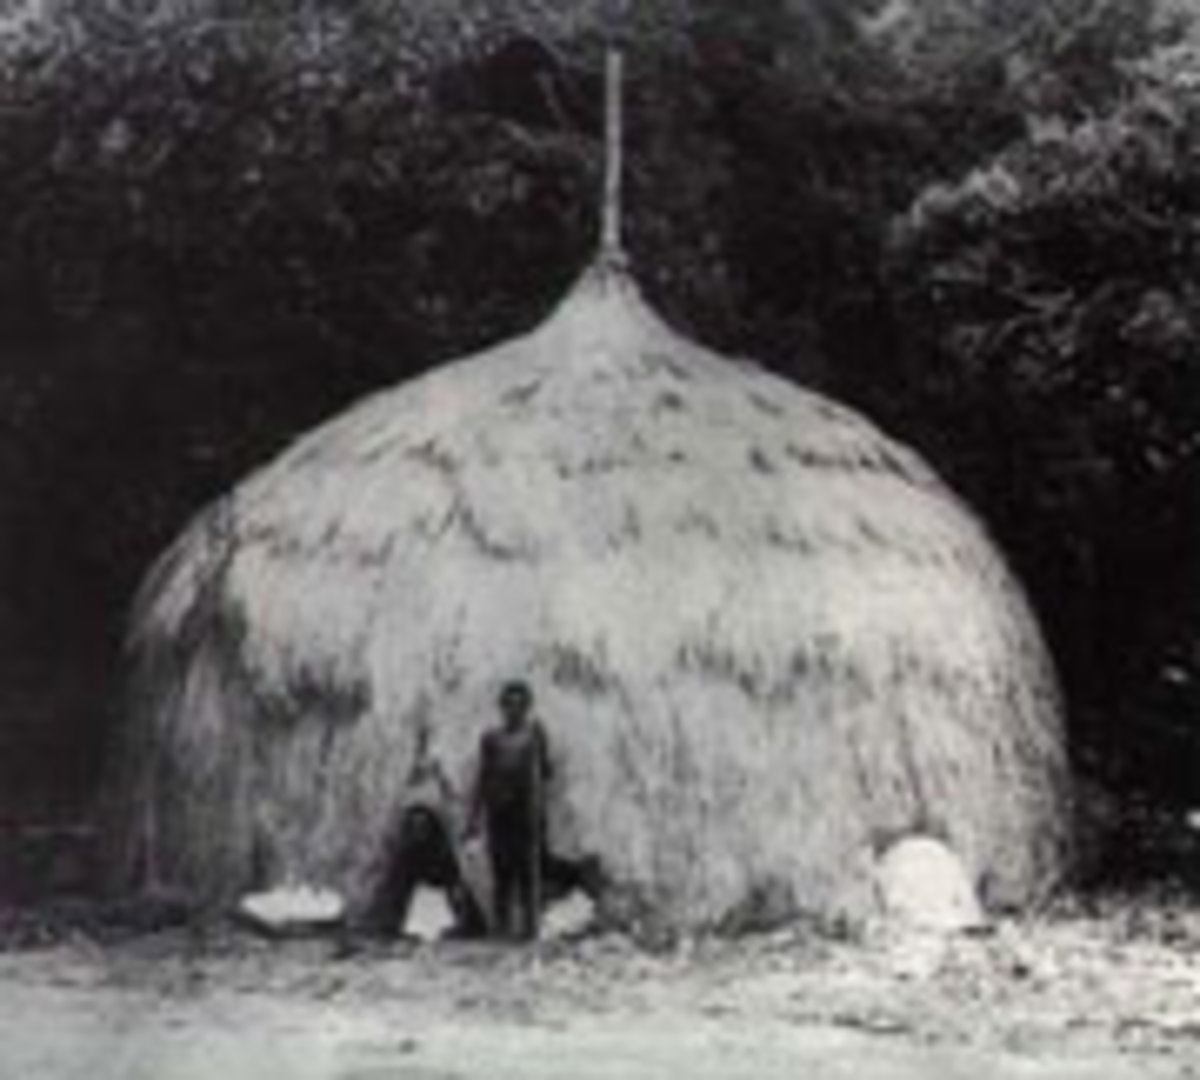 Meriam house of the Torres Strait Islands. Courtesy of Queensland Museum and Aboriginal Environments Research Centre.